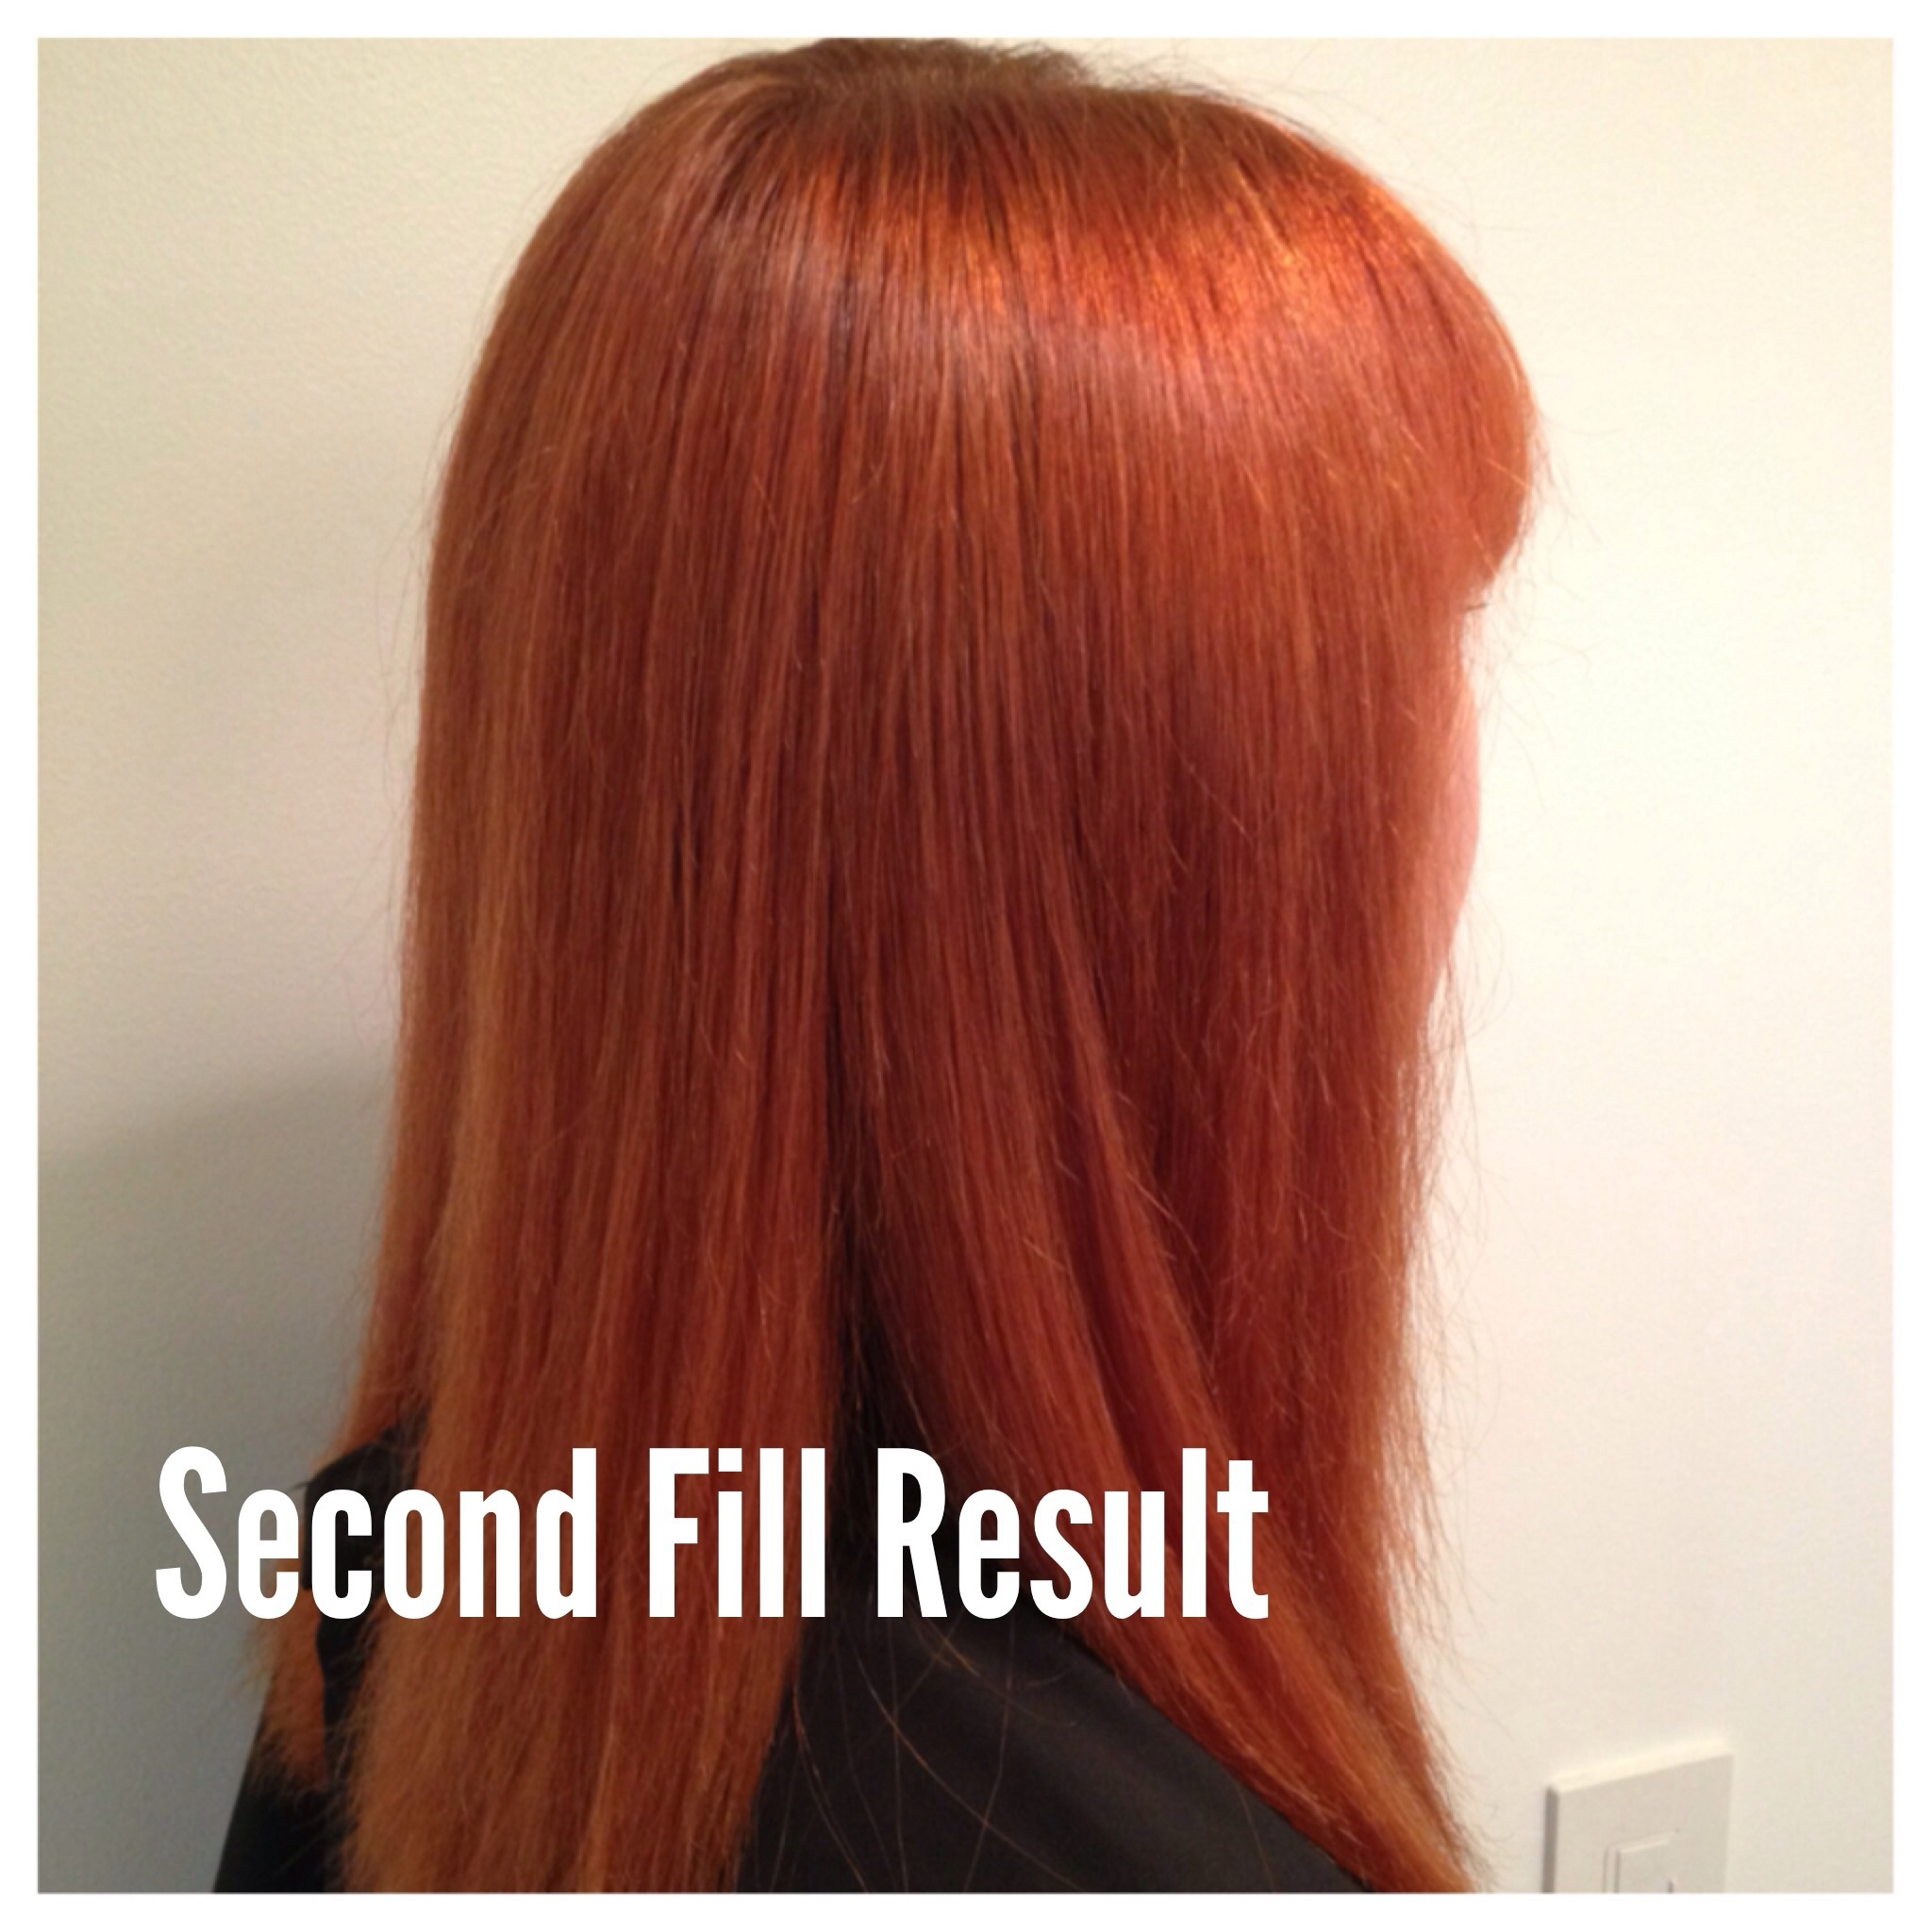 Changing your identity with hair color are you ready for the second fill result nvjuhfo Gallery